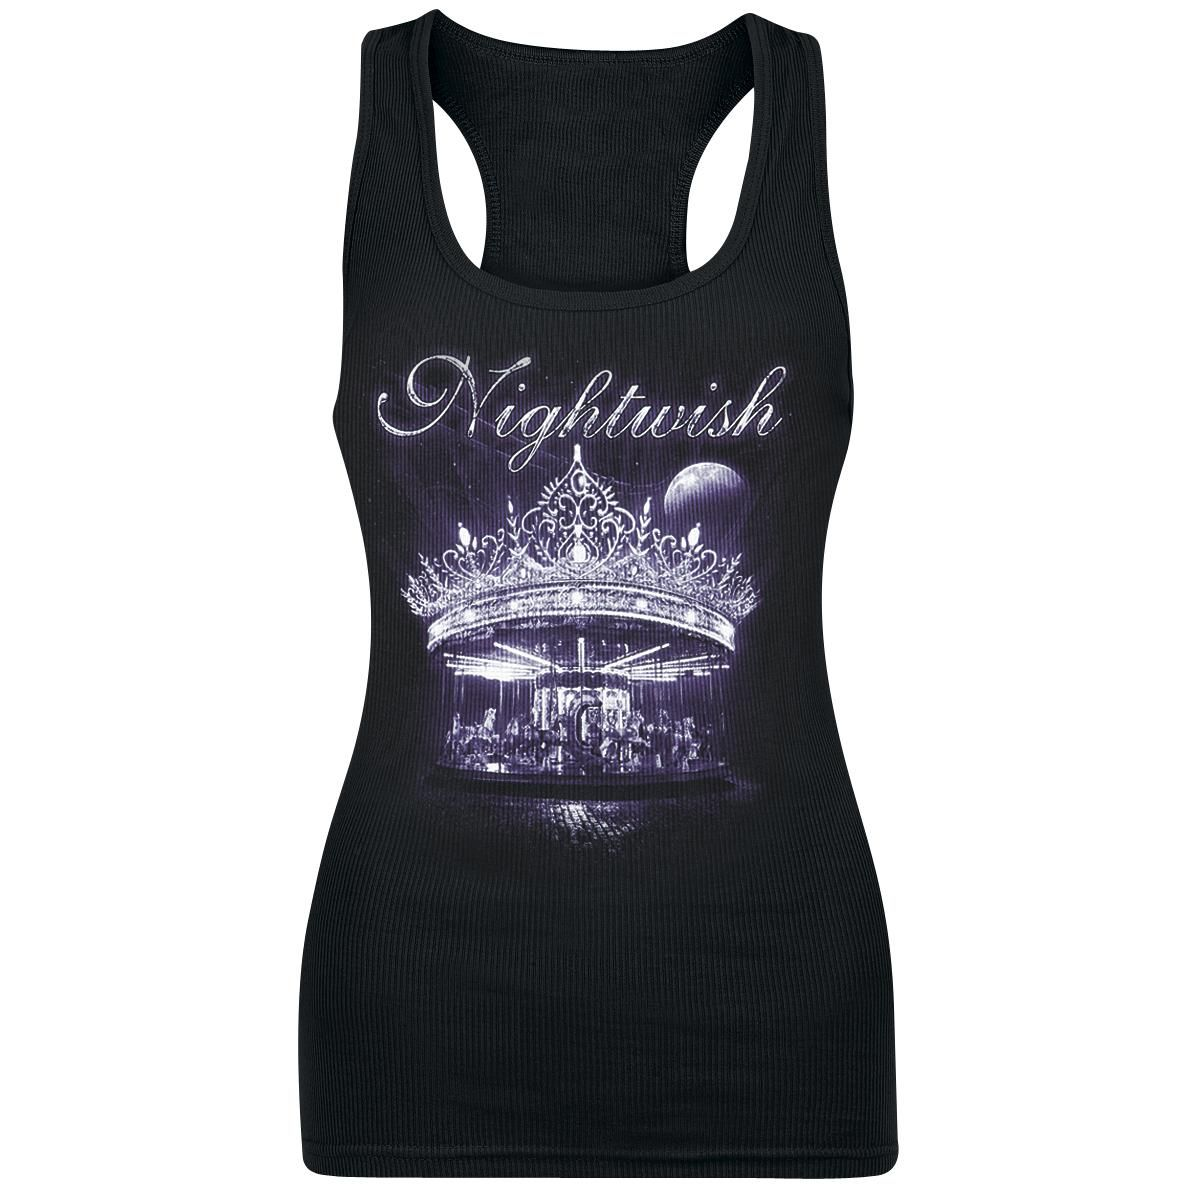 Carousel por Nightwish